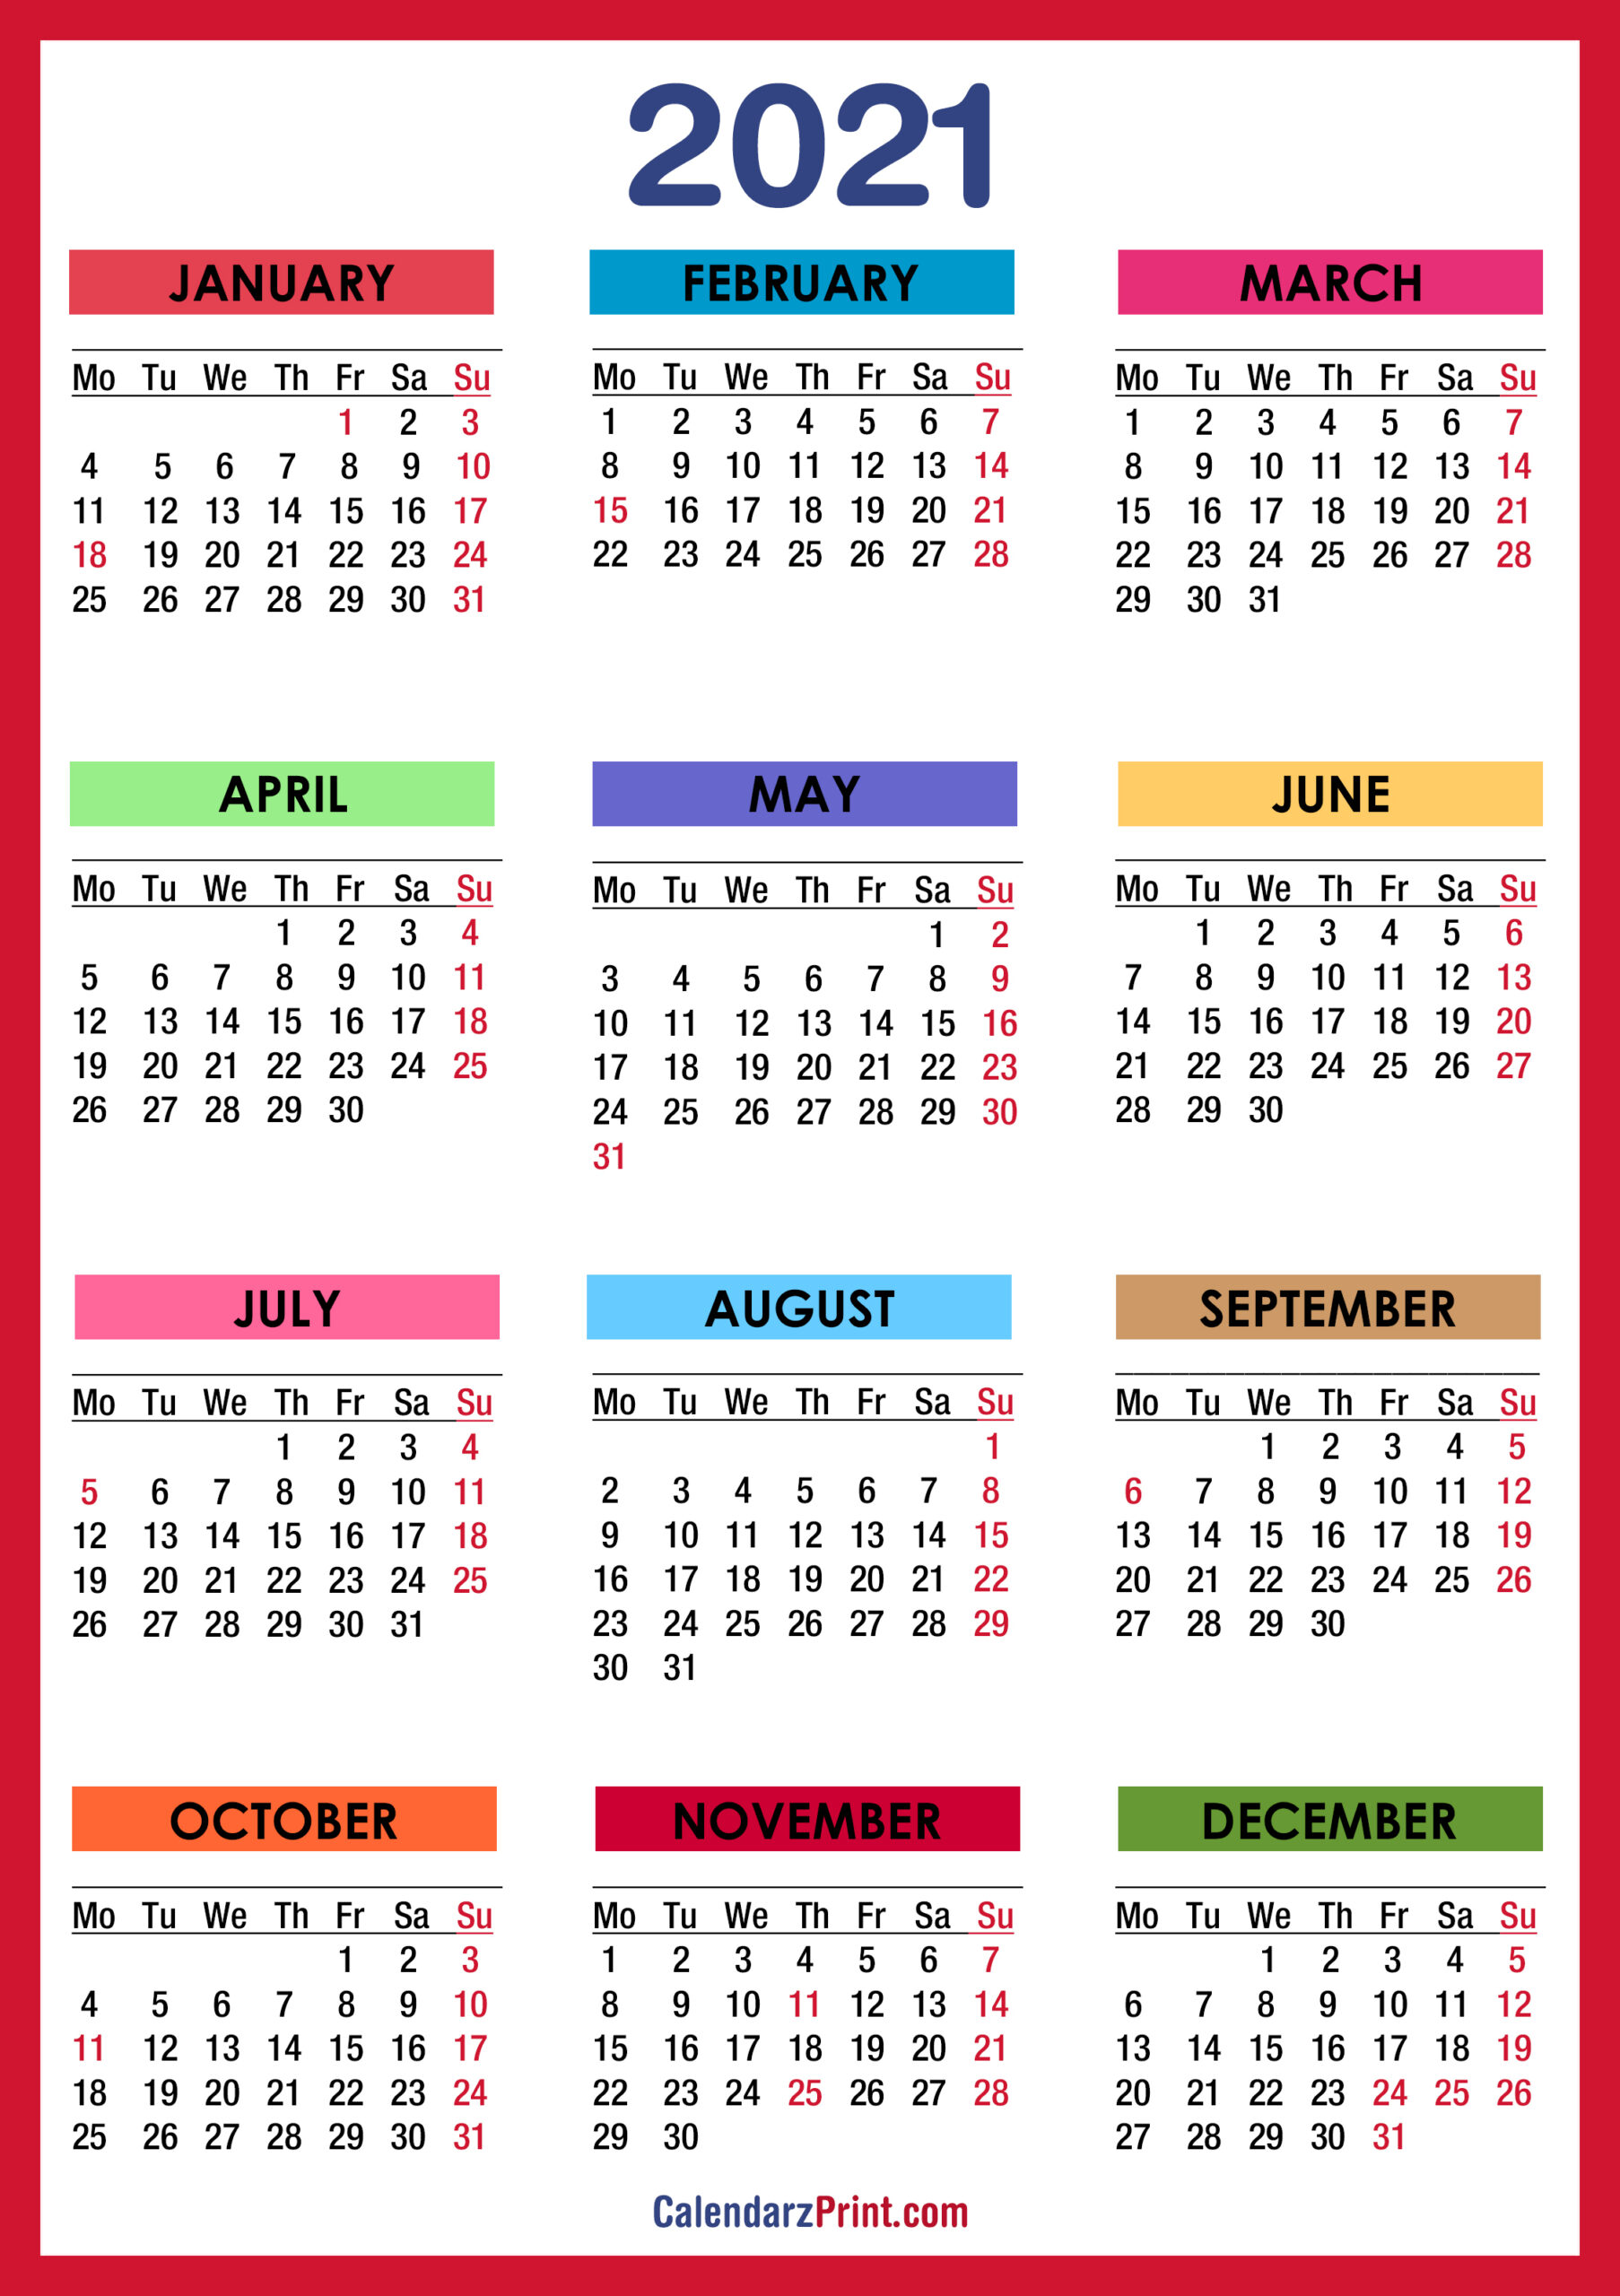 2021 Calendar With Holidays Printable Free Colorful Red